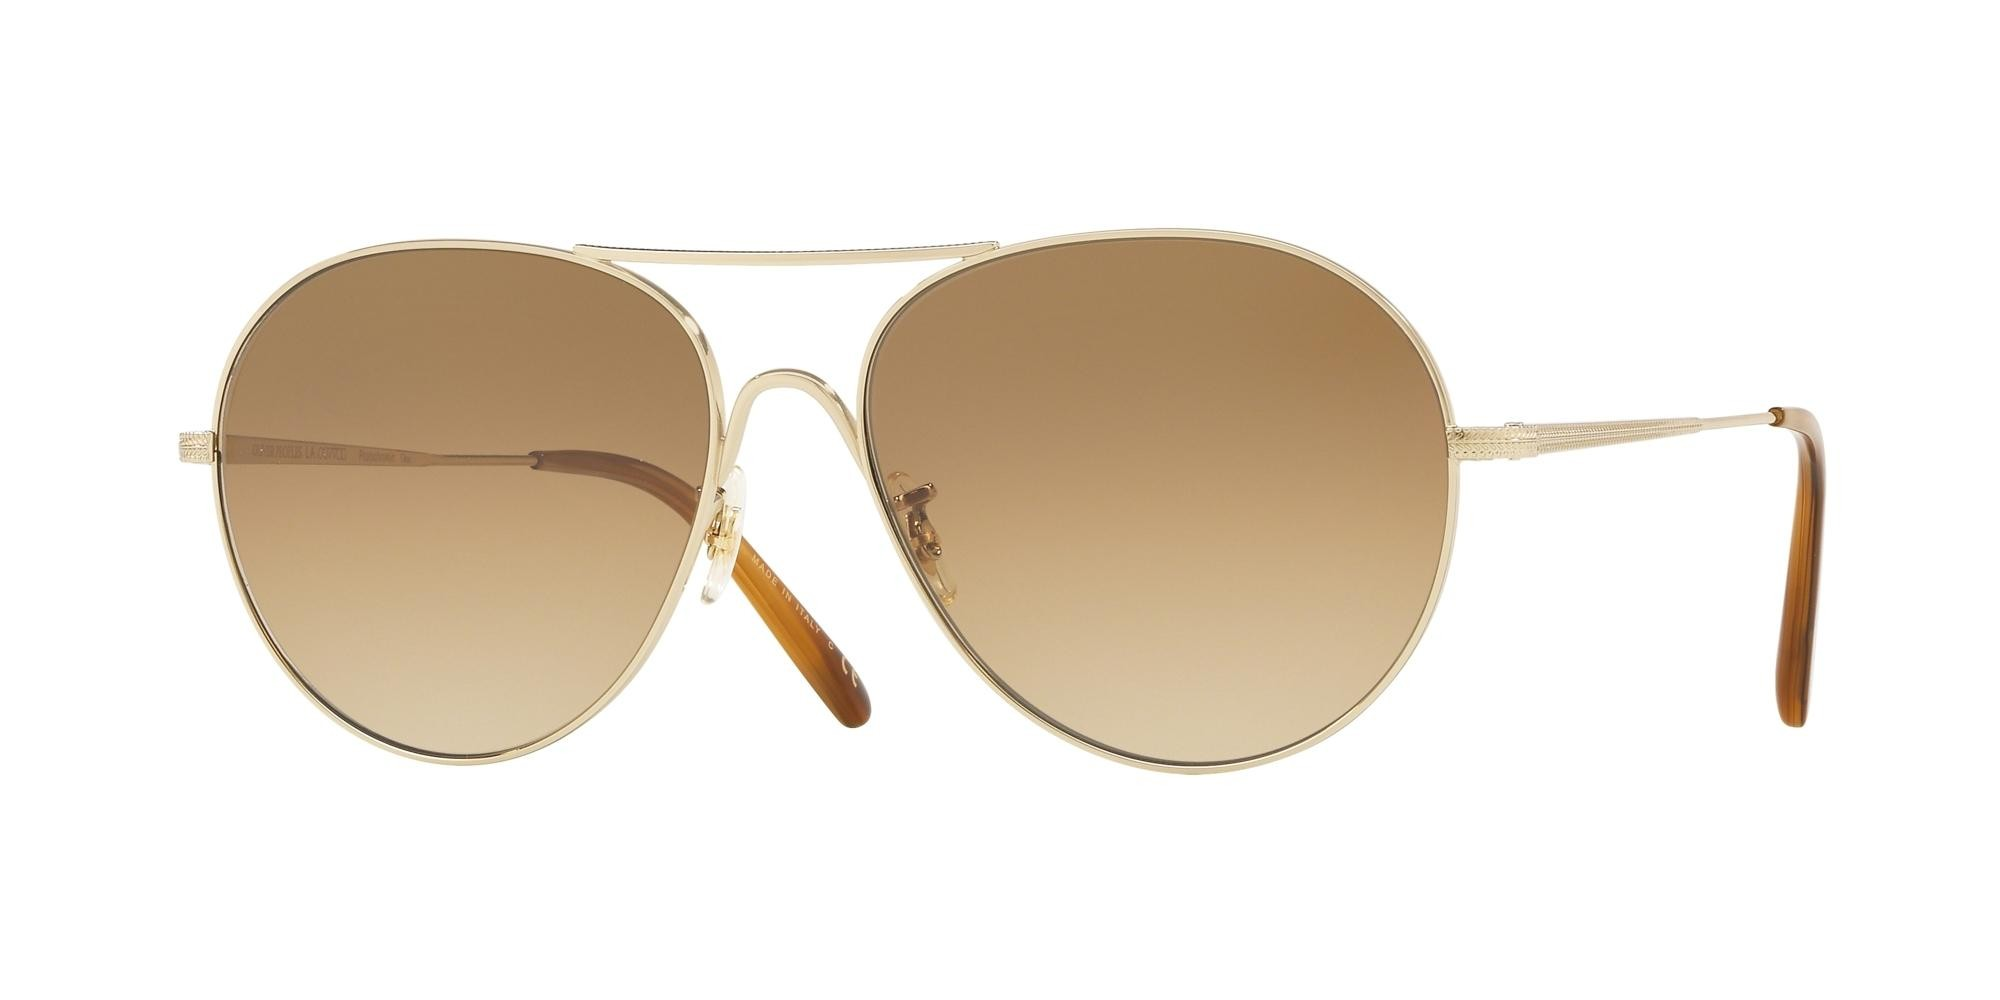 Oliver Peoples sunglasses ROCKMORE OV 1218S